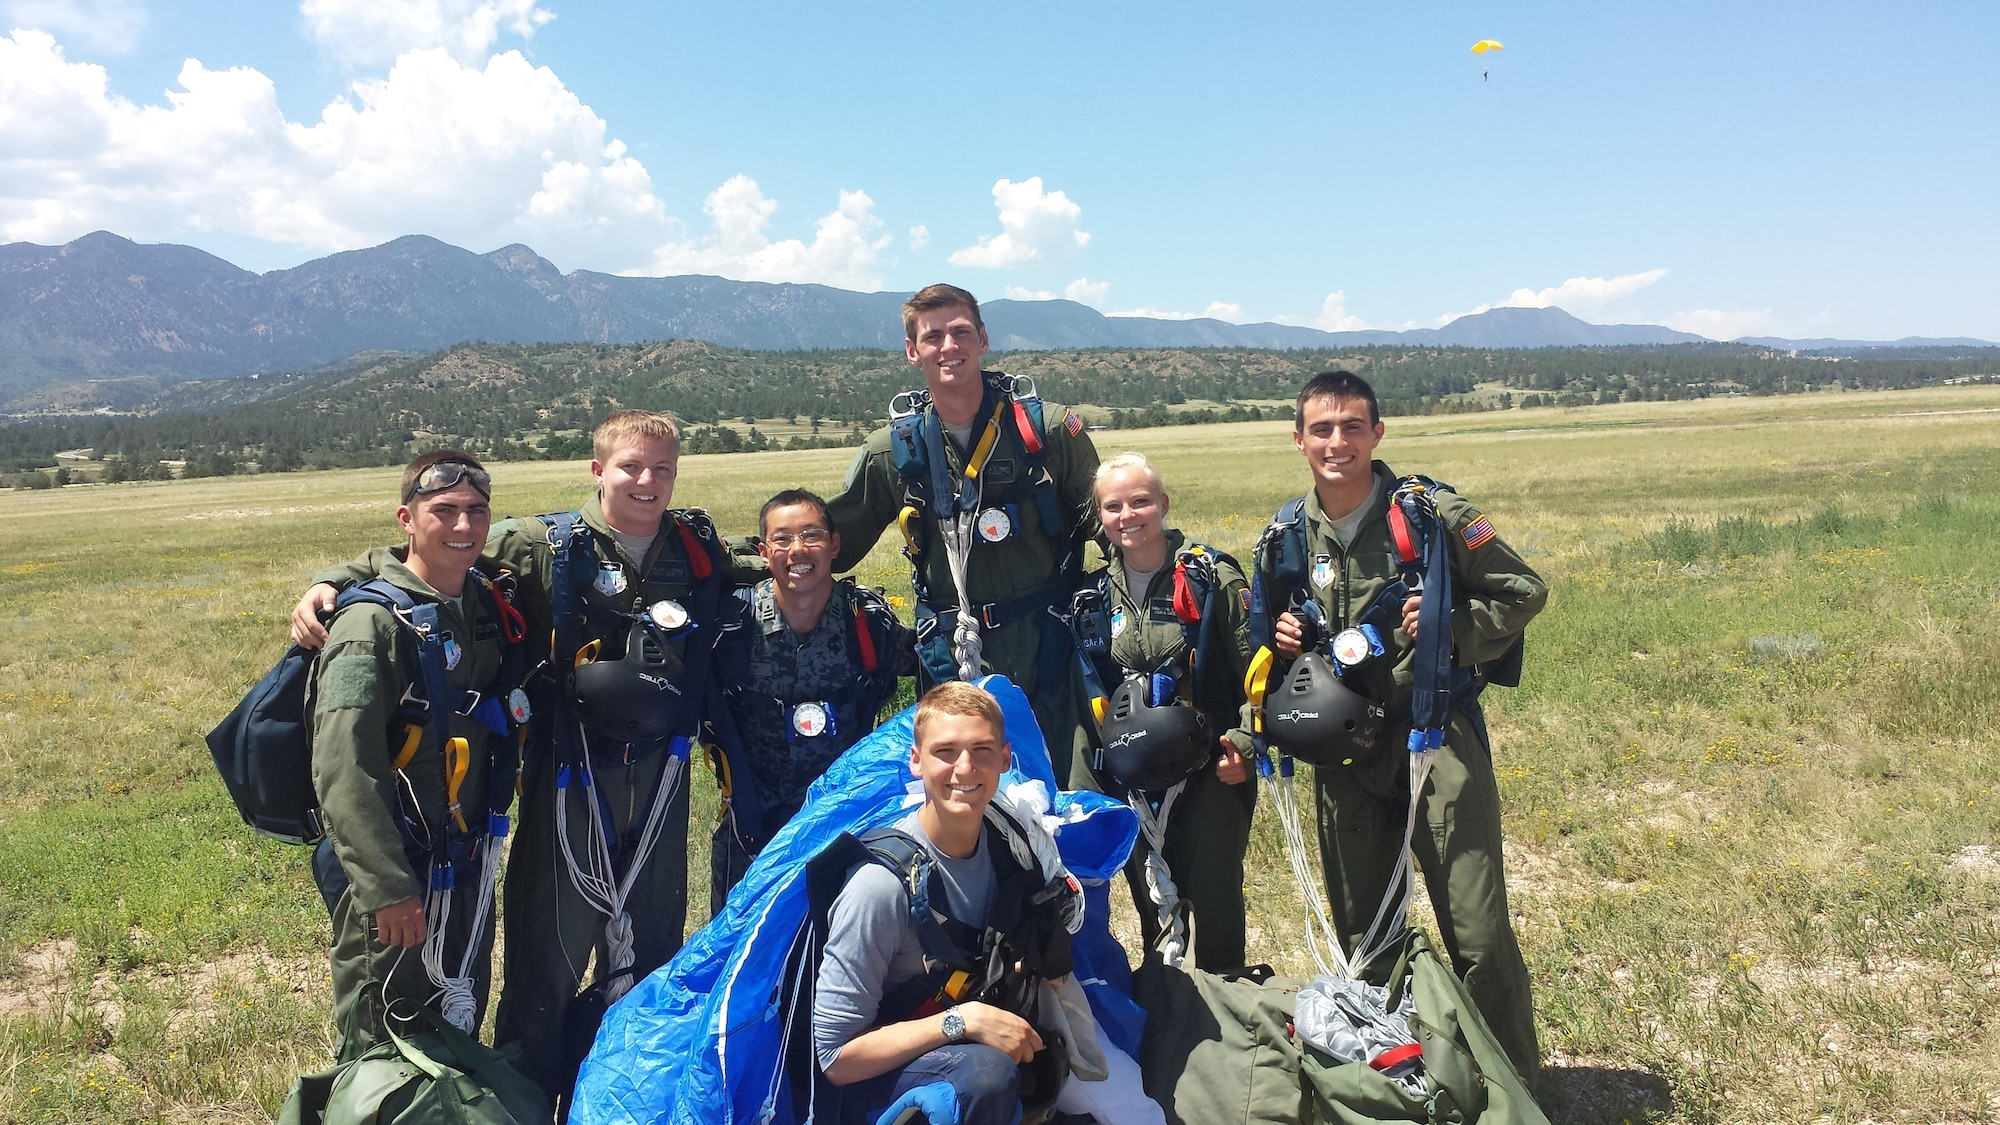 Japan Air Self-Defense Force Maj. Kazuto Ueda (center left) poses with his Airmanship 490 (Basic Jump Training) class in 2014. He earned his wings and learned more about Airmanship programs at the U.S. Air Force Academy. (Courtesy photo)